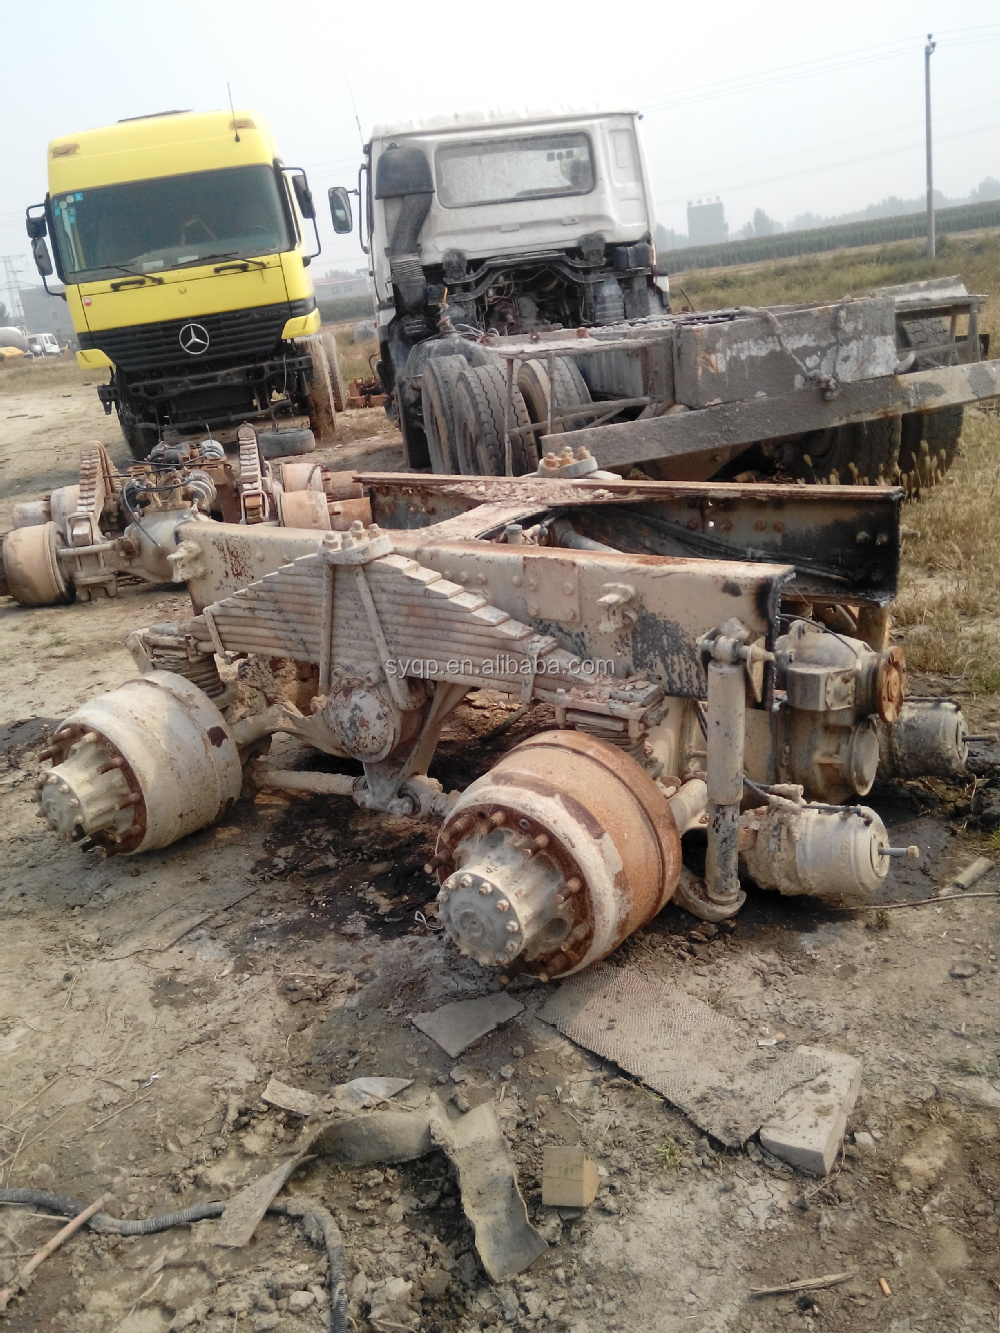 Truck Volvo For Sale >> Used Volvo Rear Axle Ctev87 And Volvo Complete Truck Fh12 In Sale - Buy Used Volvo Rear Axle ...